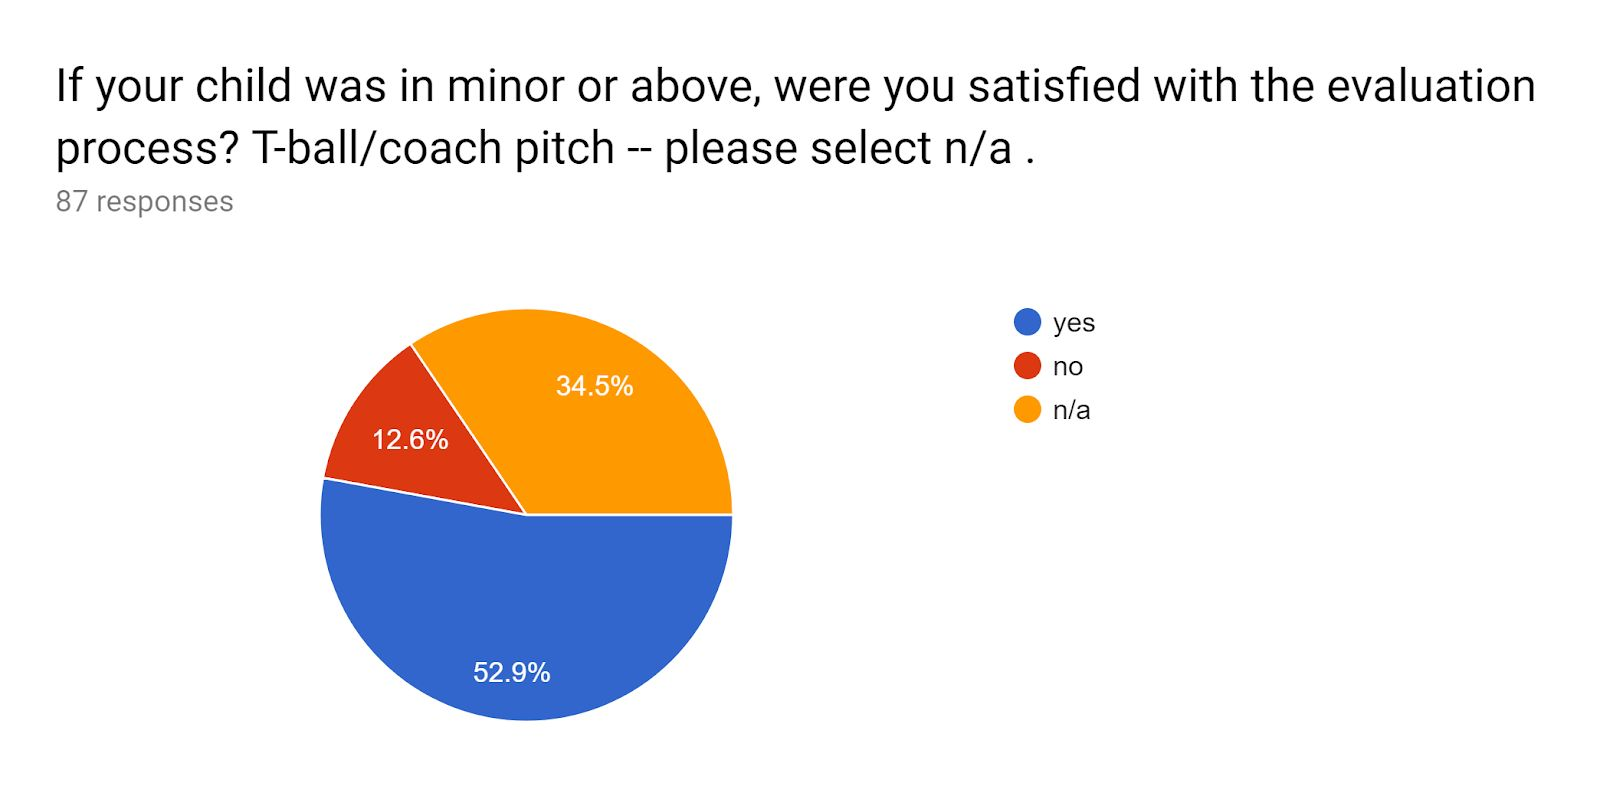 Satisfaction of evaluation process for players in minors and above pie chart